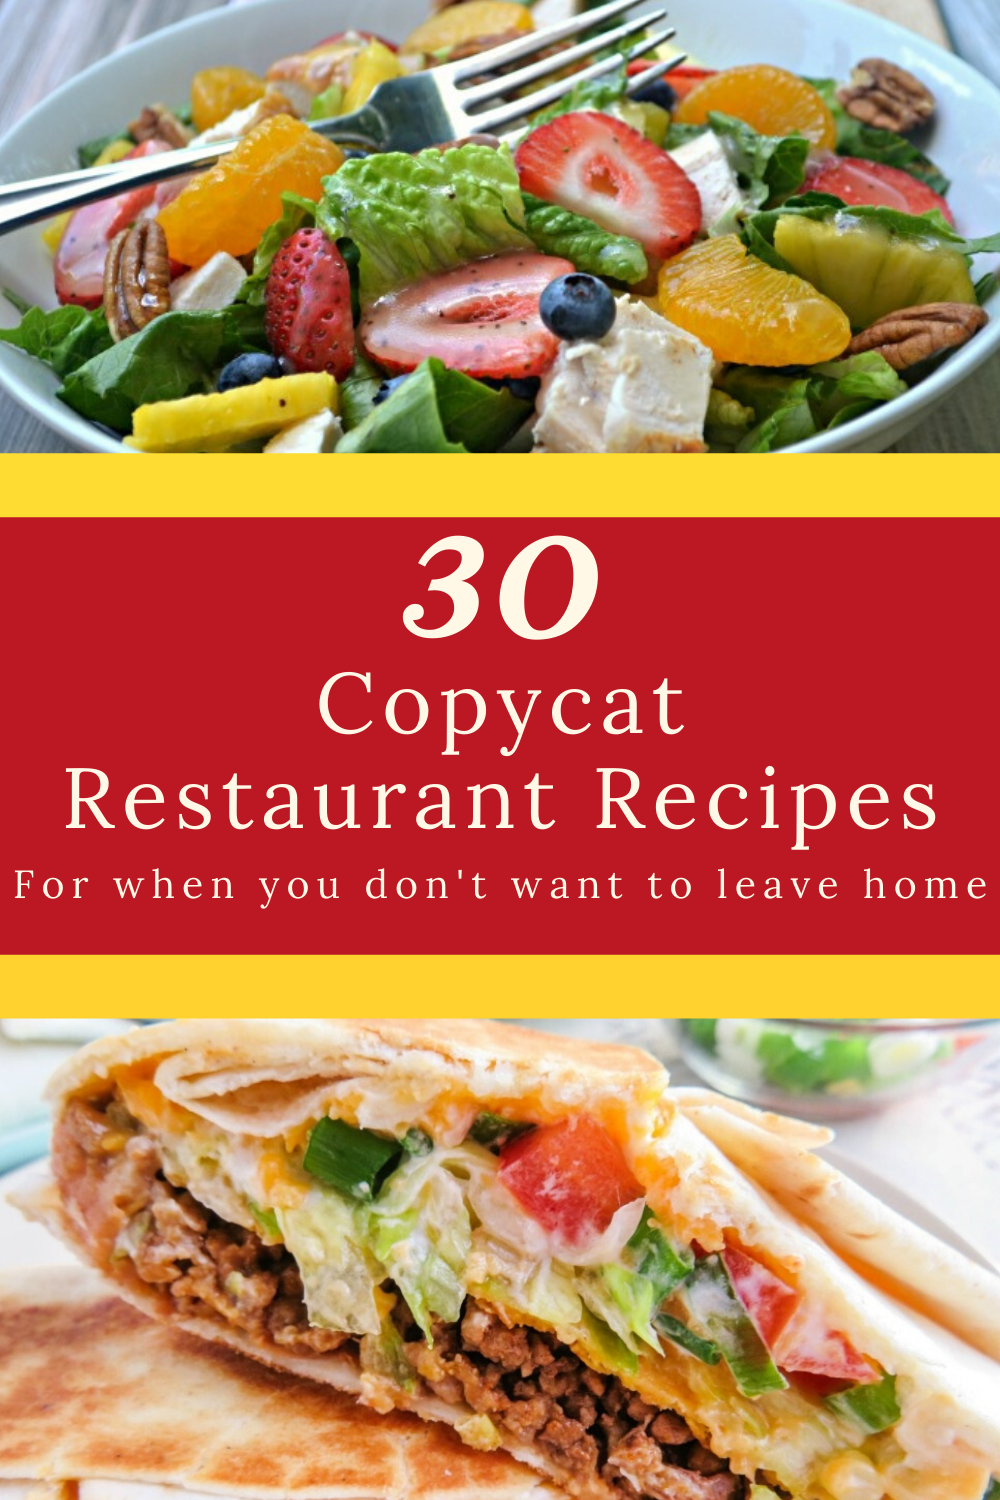 Copycat Restaurant Recipes, copycat recipes, Copycat Starbucks recipes, copycat Panera Bread recipes, copycat fast food recipes, Copycat restaurant recipes for when you do not want to leave your house